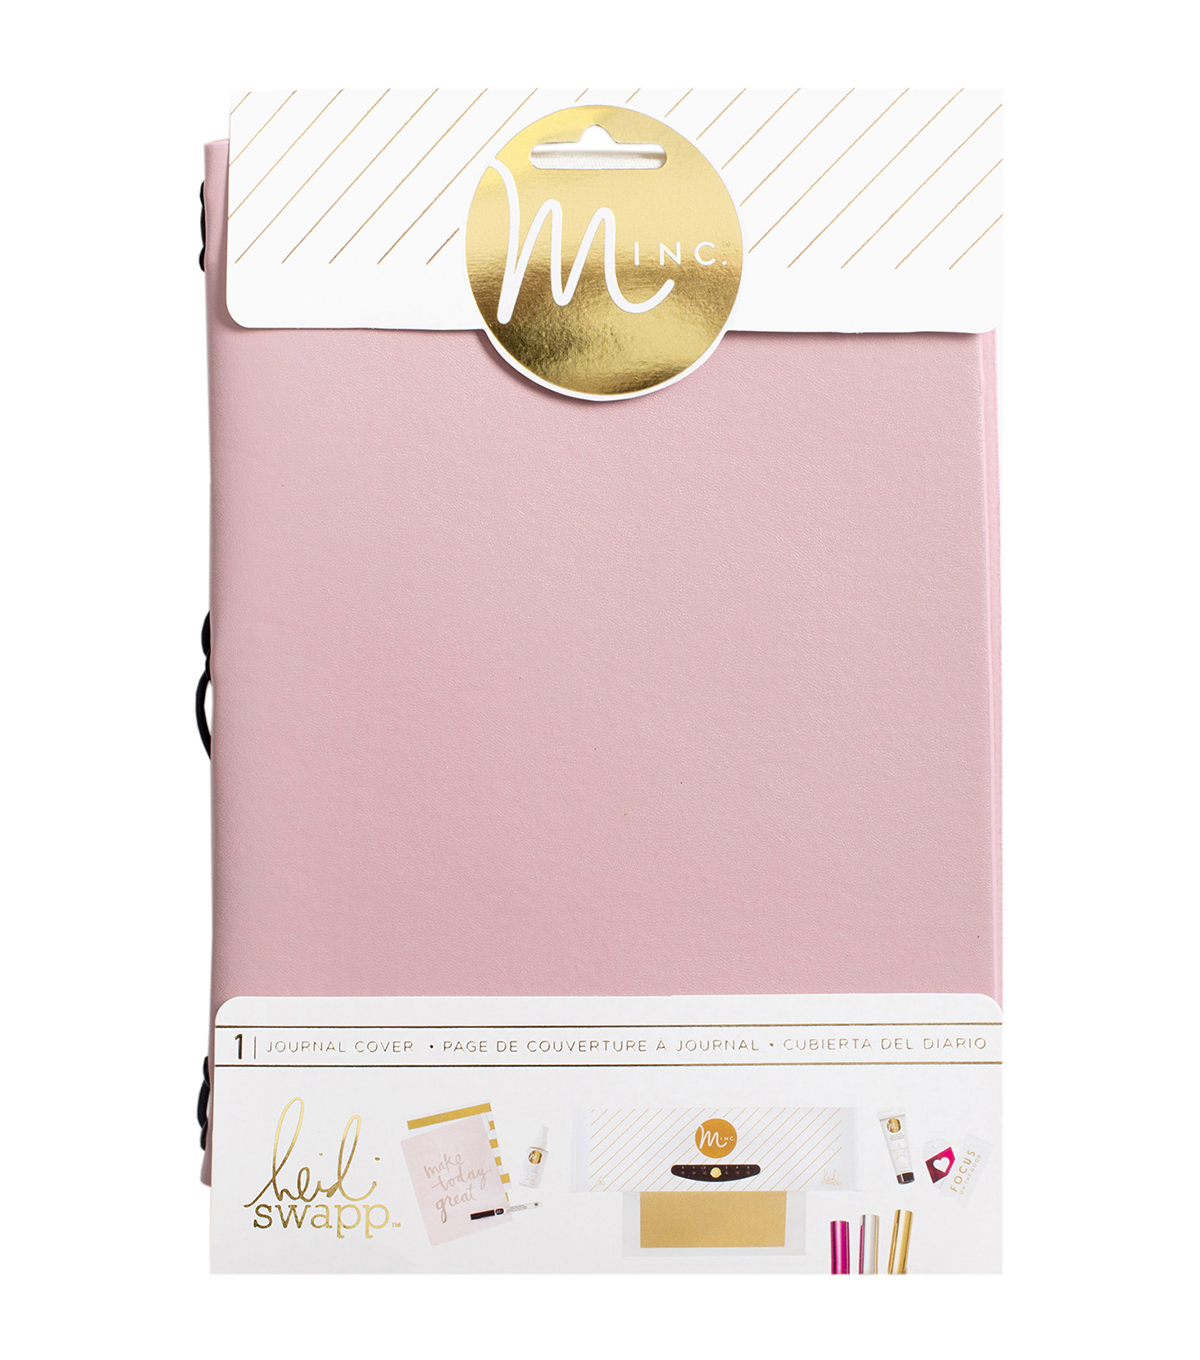 Heidi Swapp Minc Journal Cover 6\u0022X9\u0022-Blush Vinyl